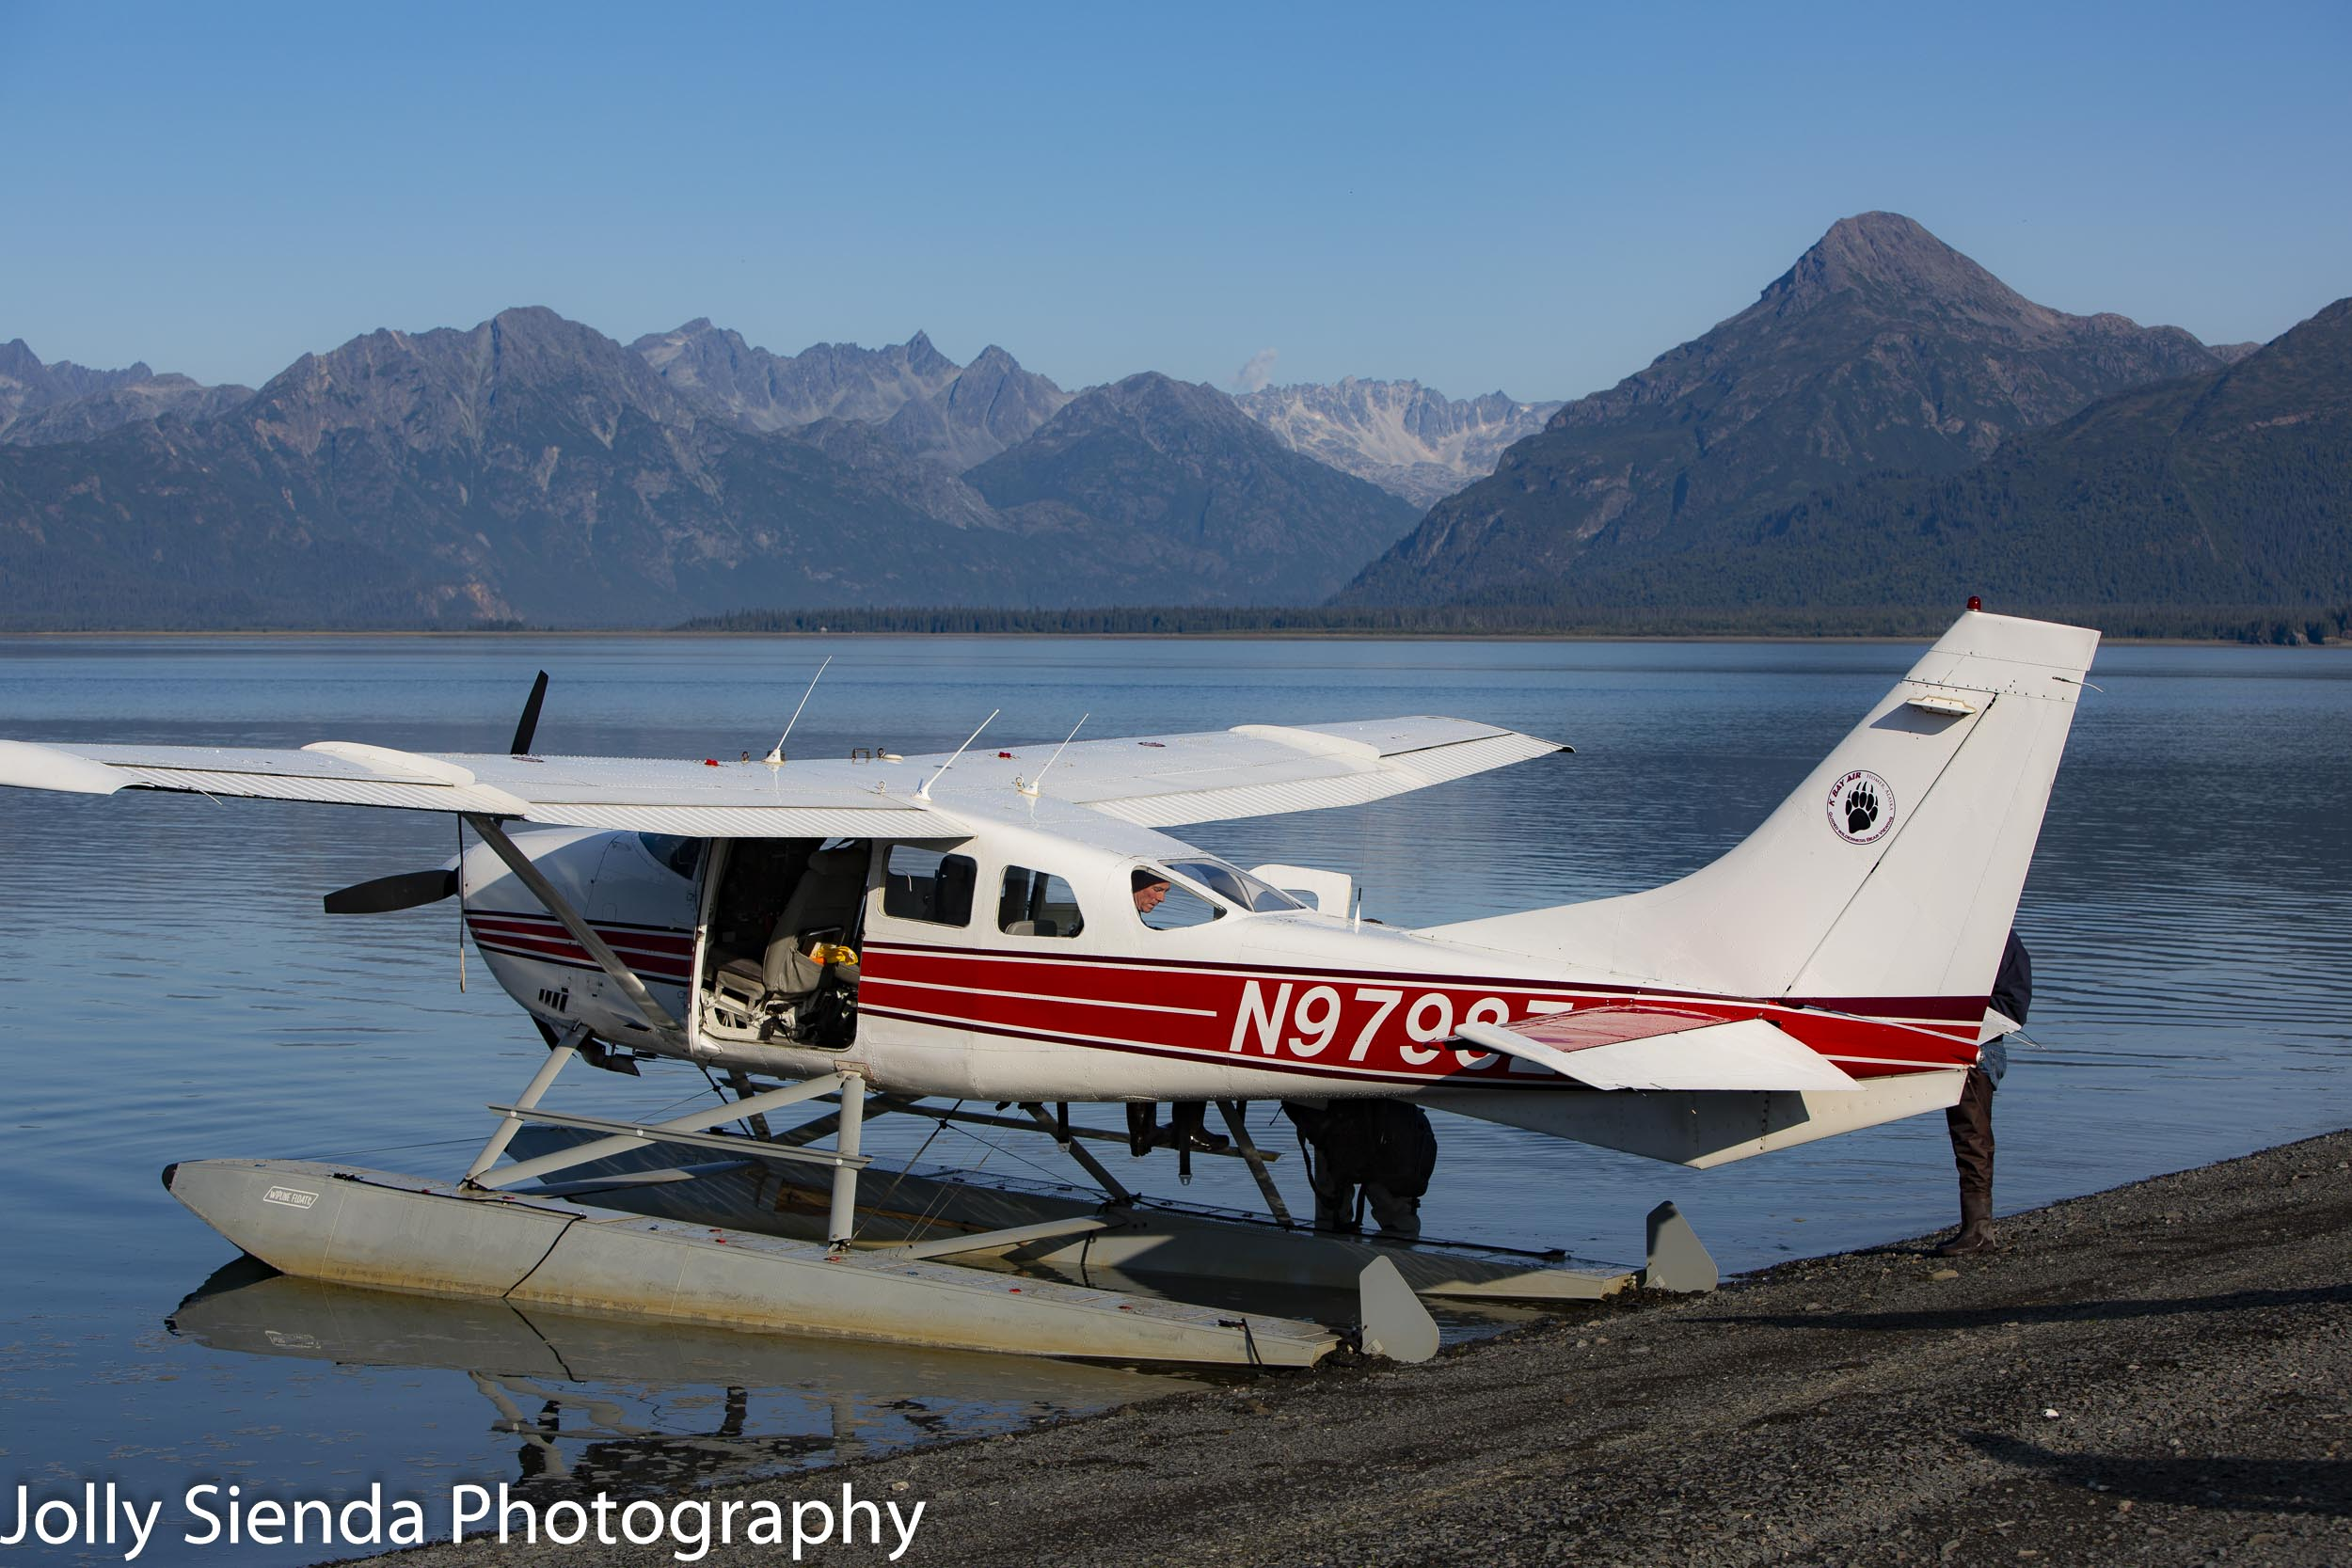 Arrived at Kachemak Bay via a float plane by courtesy of Alaska Bear Adventures